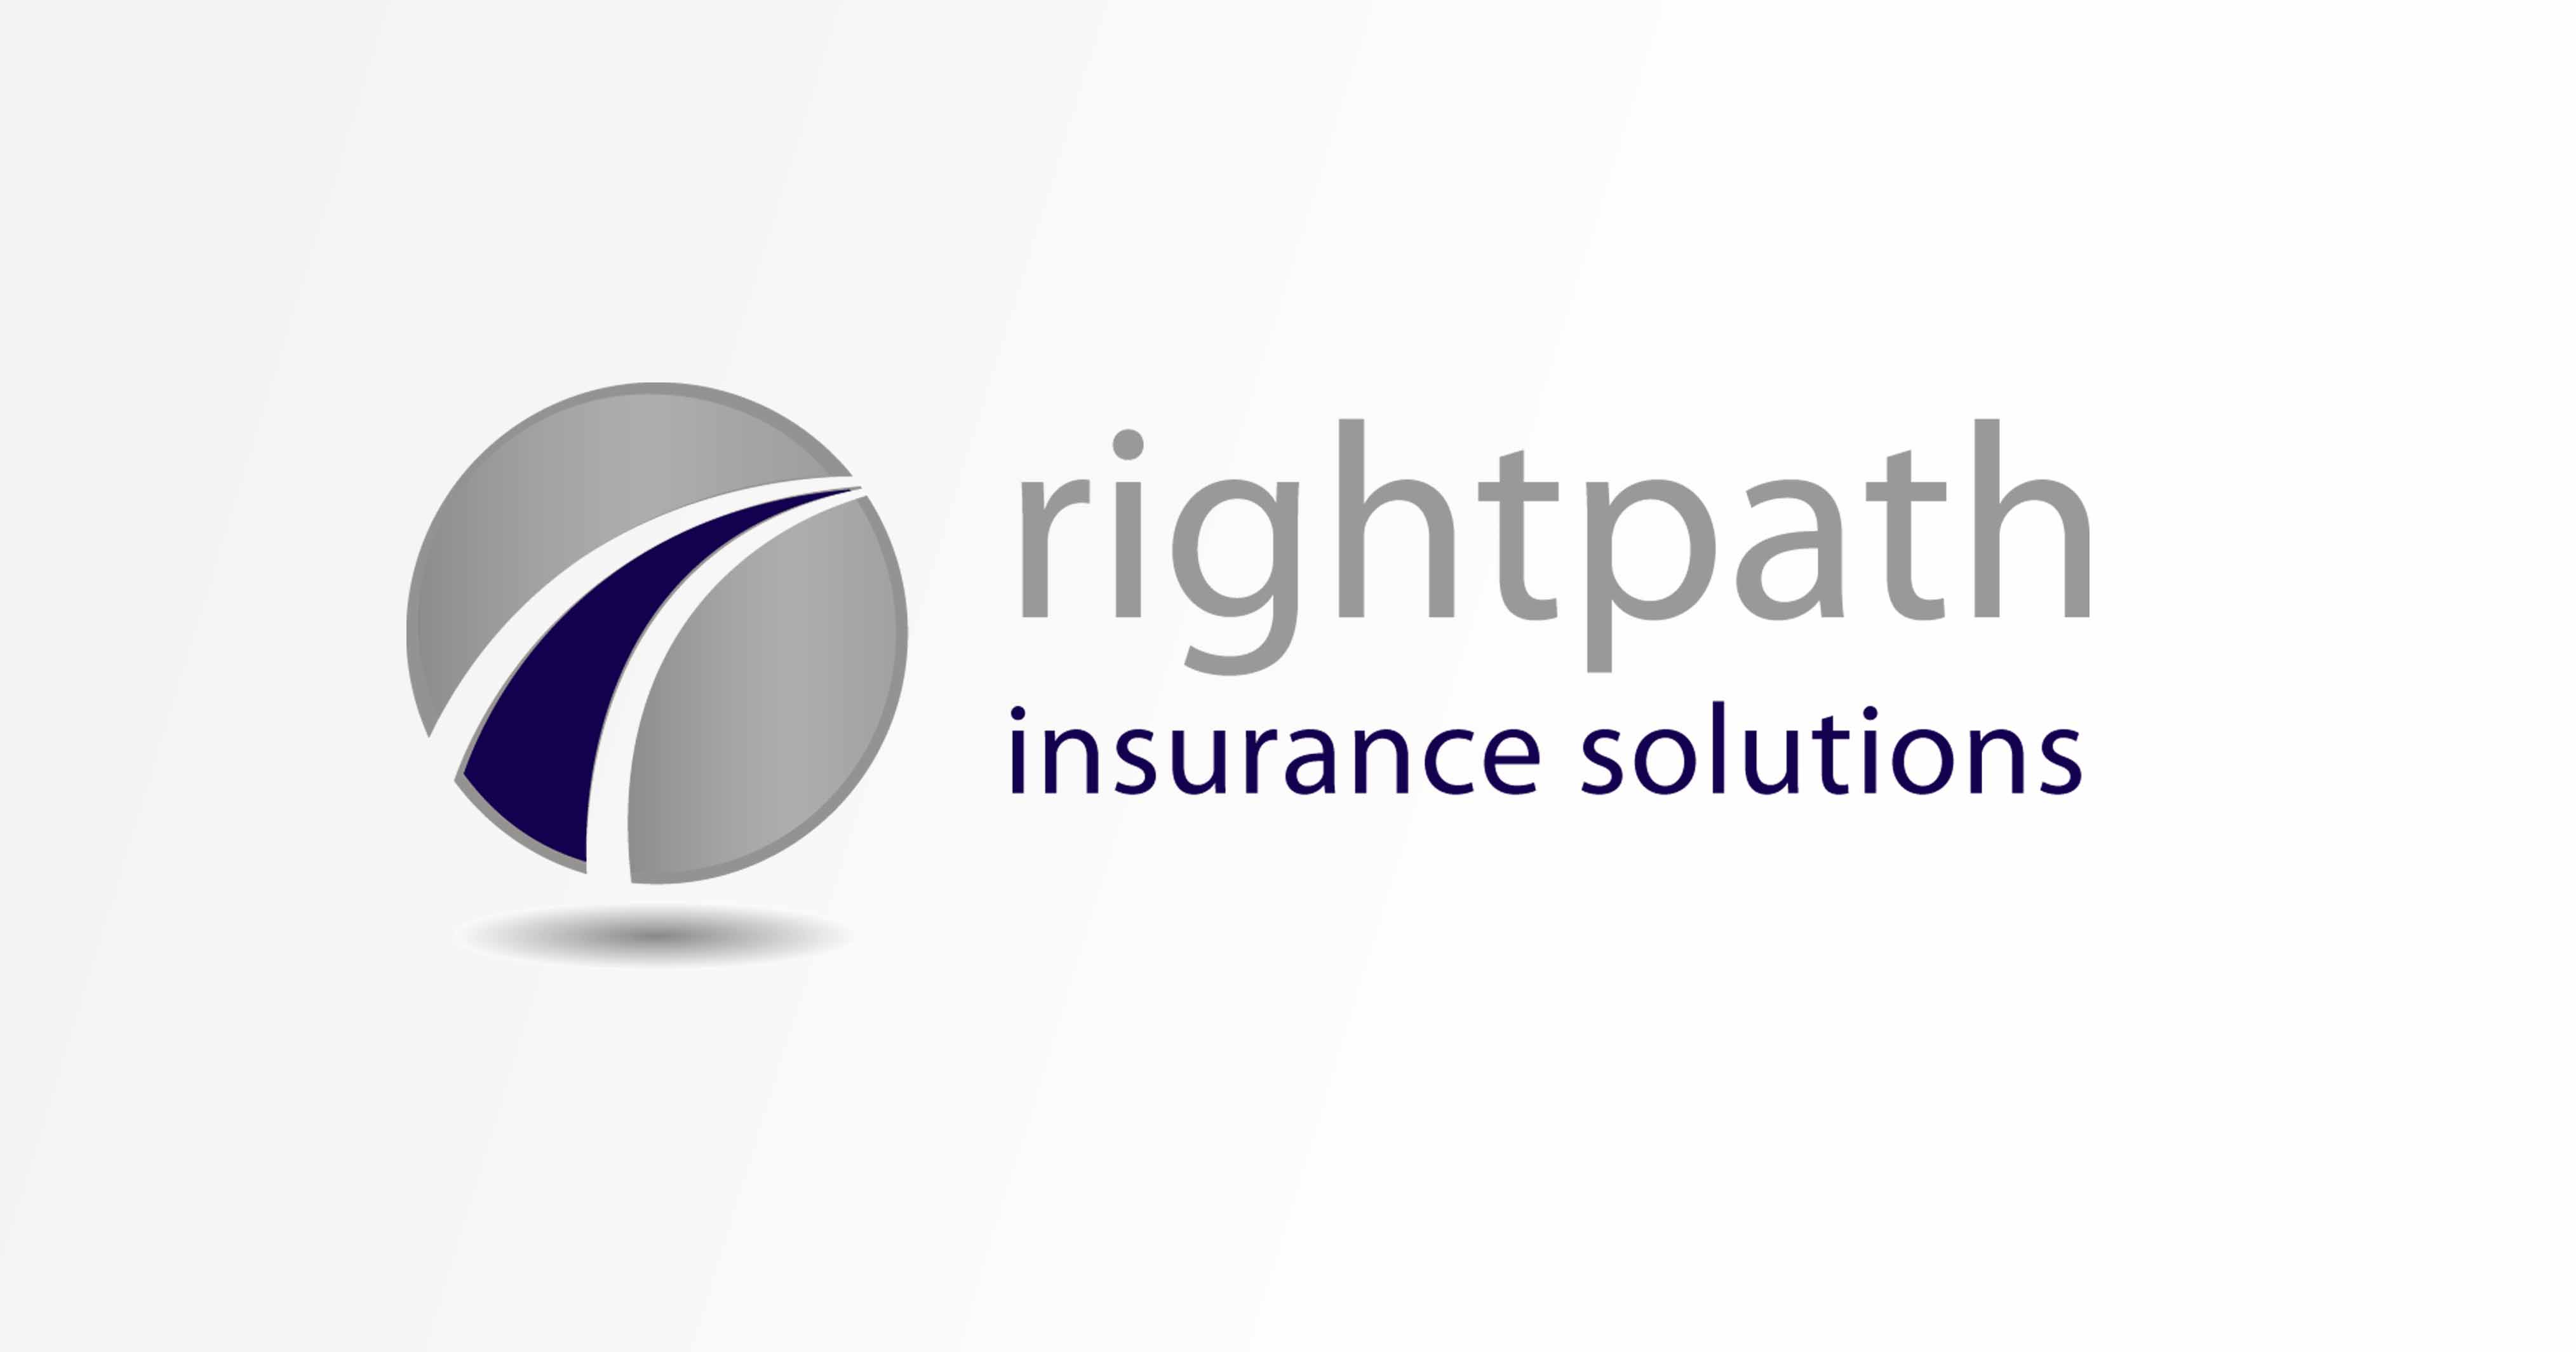 The Rightpath Insurance Solutions logo on a white background